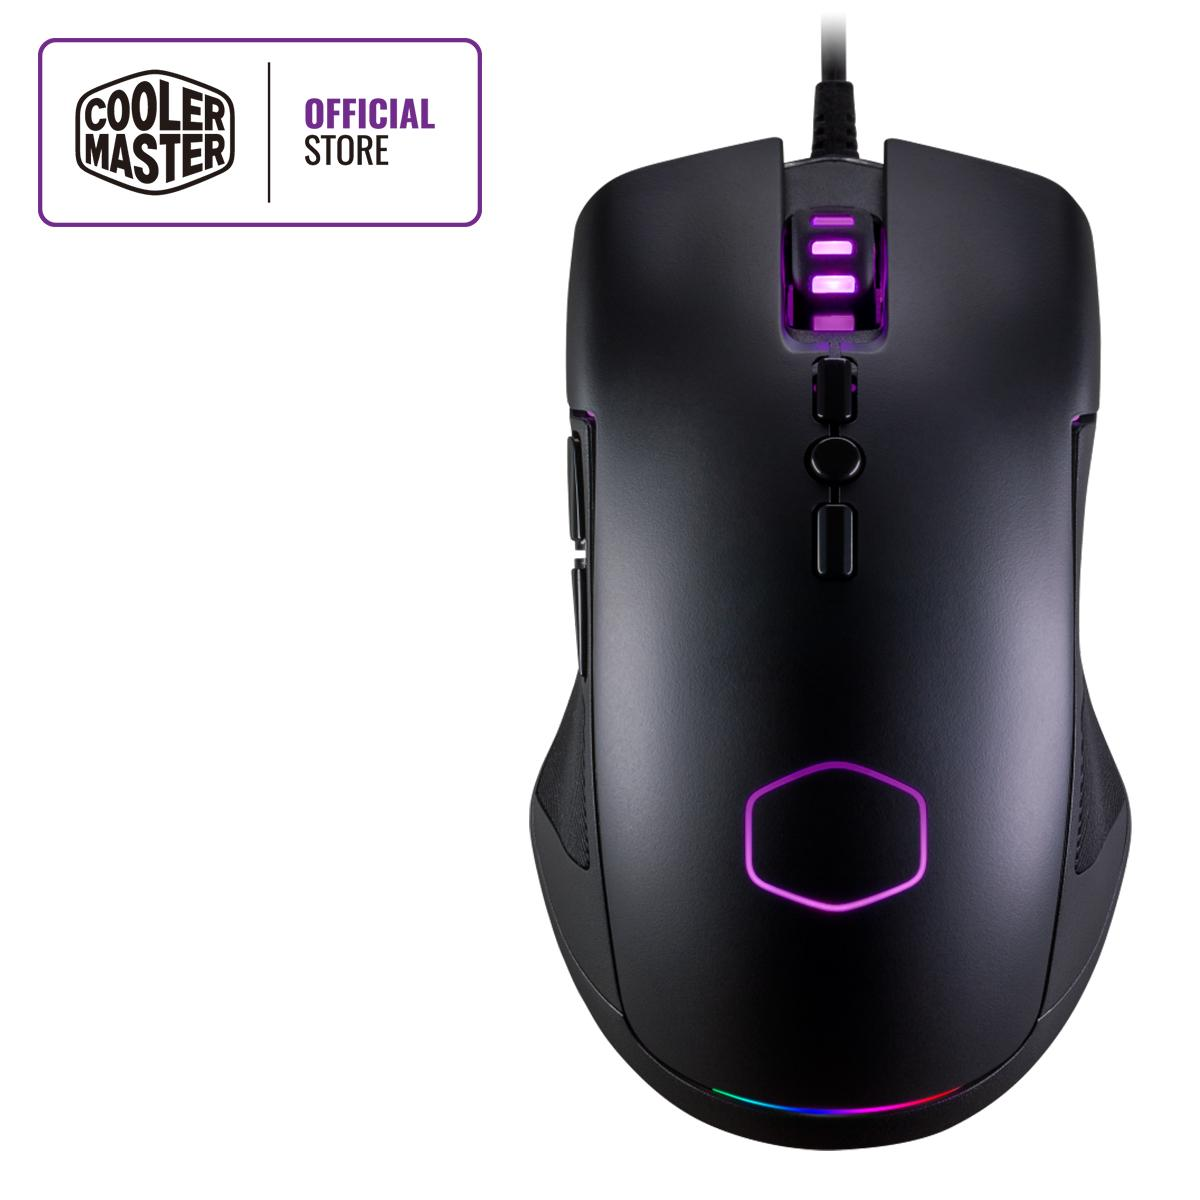 f21b6012992 Cooler Master CM310 Ambidextrous 8 Buttons 10000 DPI RGB Gaming Mouse